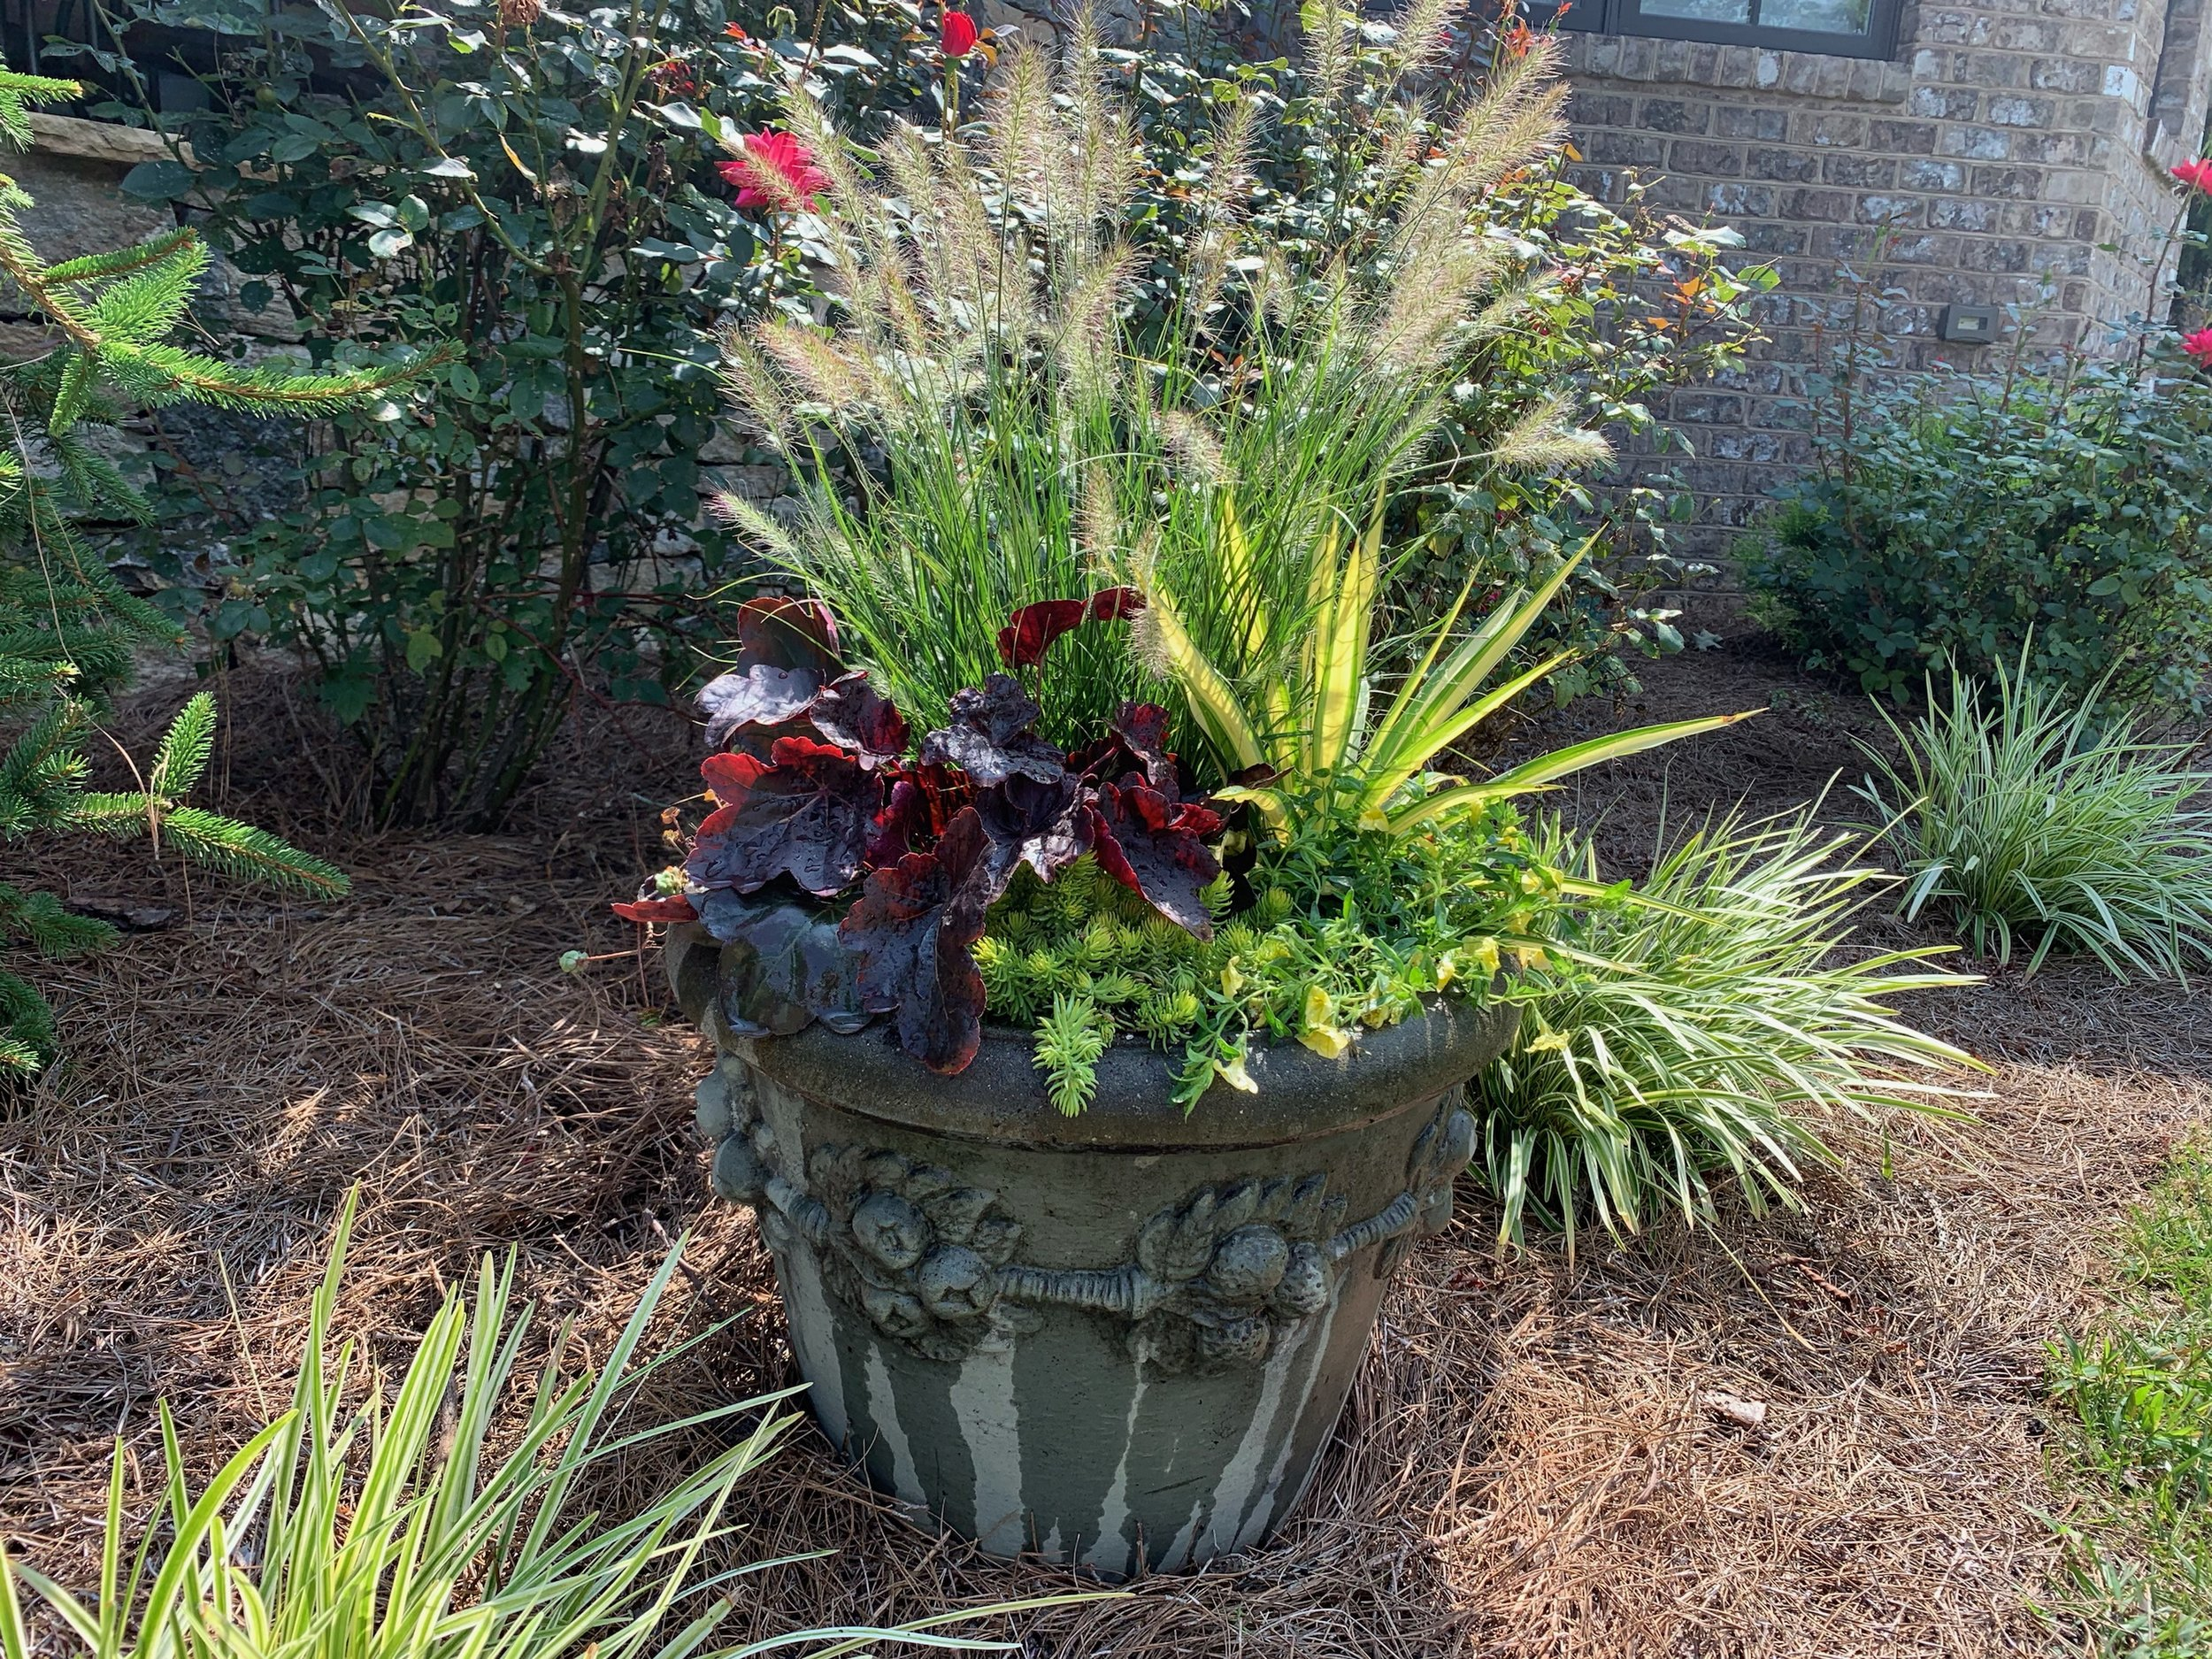 Grasses, yucca, sedum, carex and heucheras will carry this pot through the winter. Adding berries and curly willow turns it into a beautiful holiday container. Design and picture by Brenna Henley.